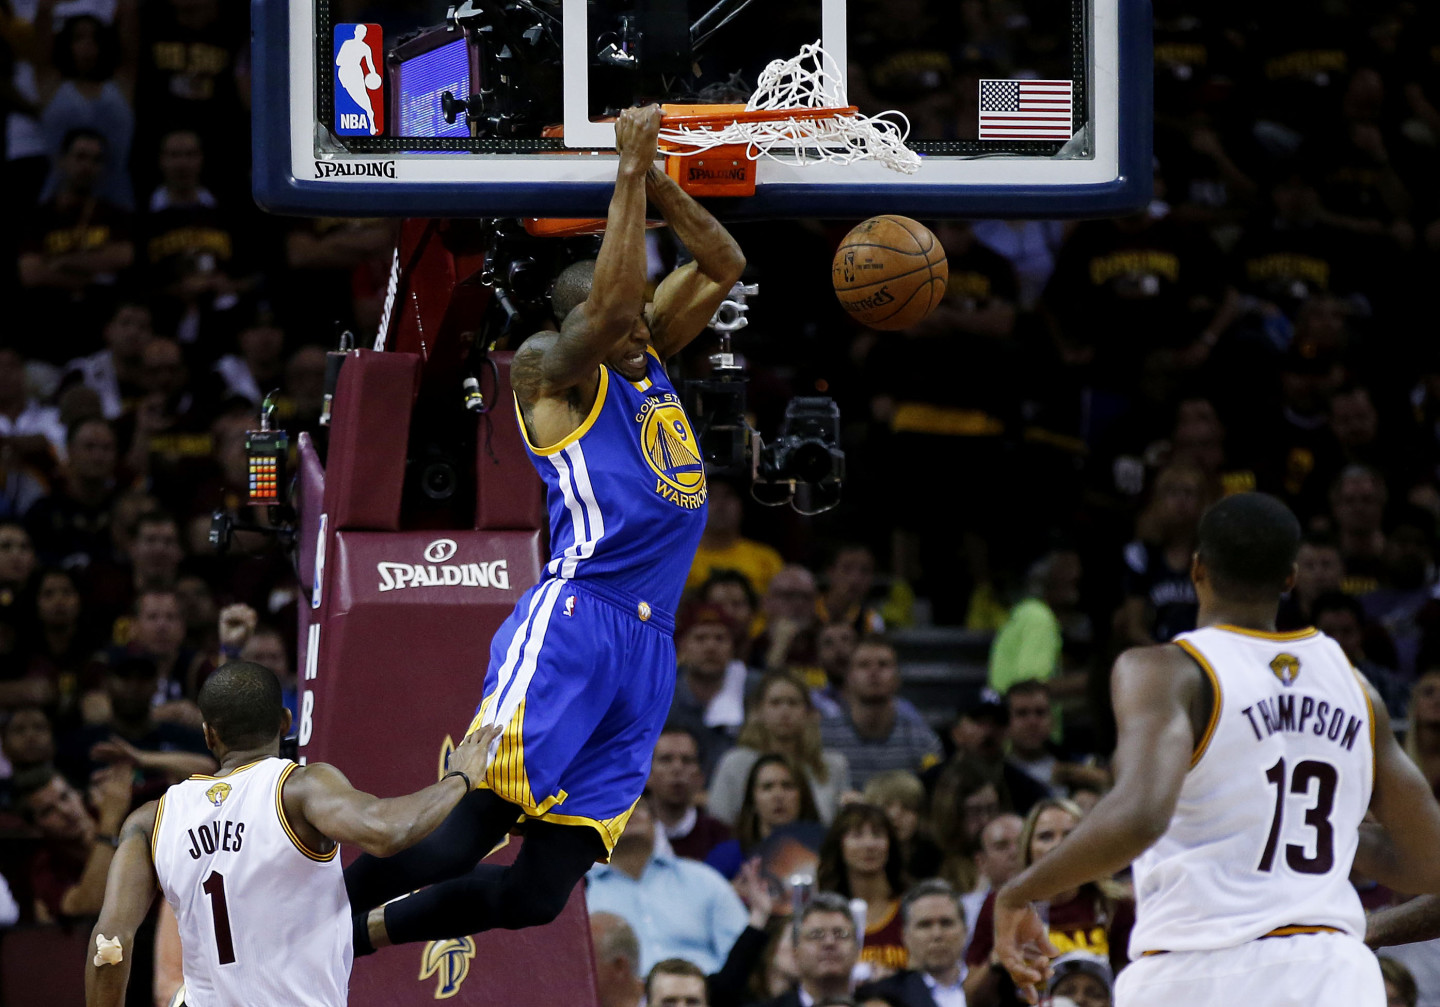 Finals MVP Andre Iguodala had an incredible game, scoring 25 points while keeping LeBron James in check on defense.